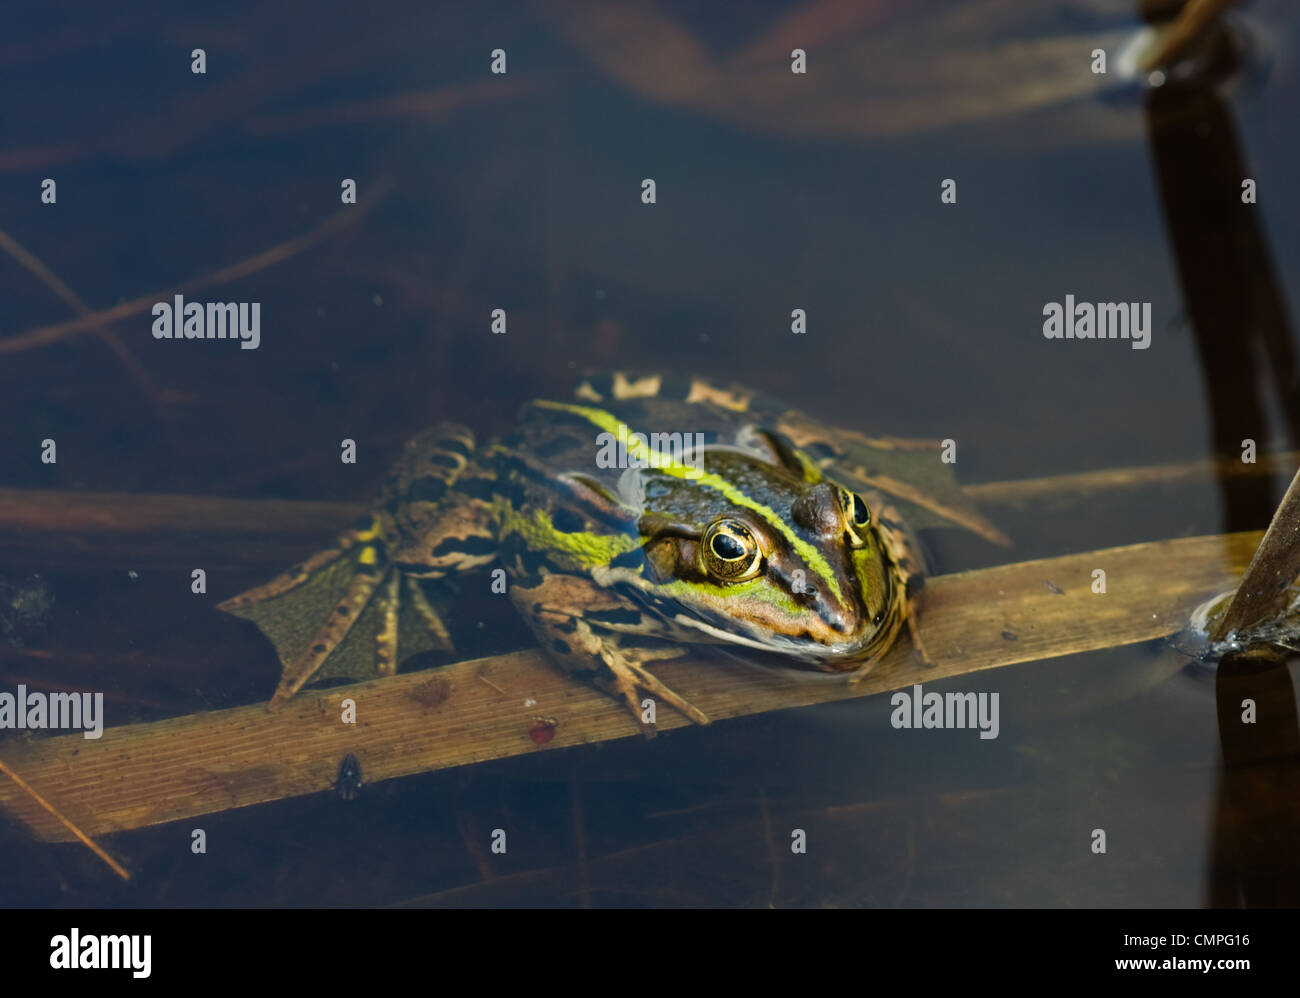 A Common Frog (Rana temporaria), resting in the clear water of a lake. - Stock Image